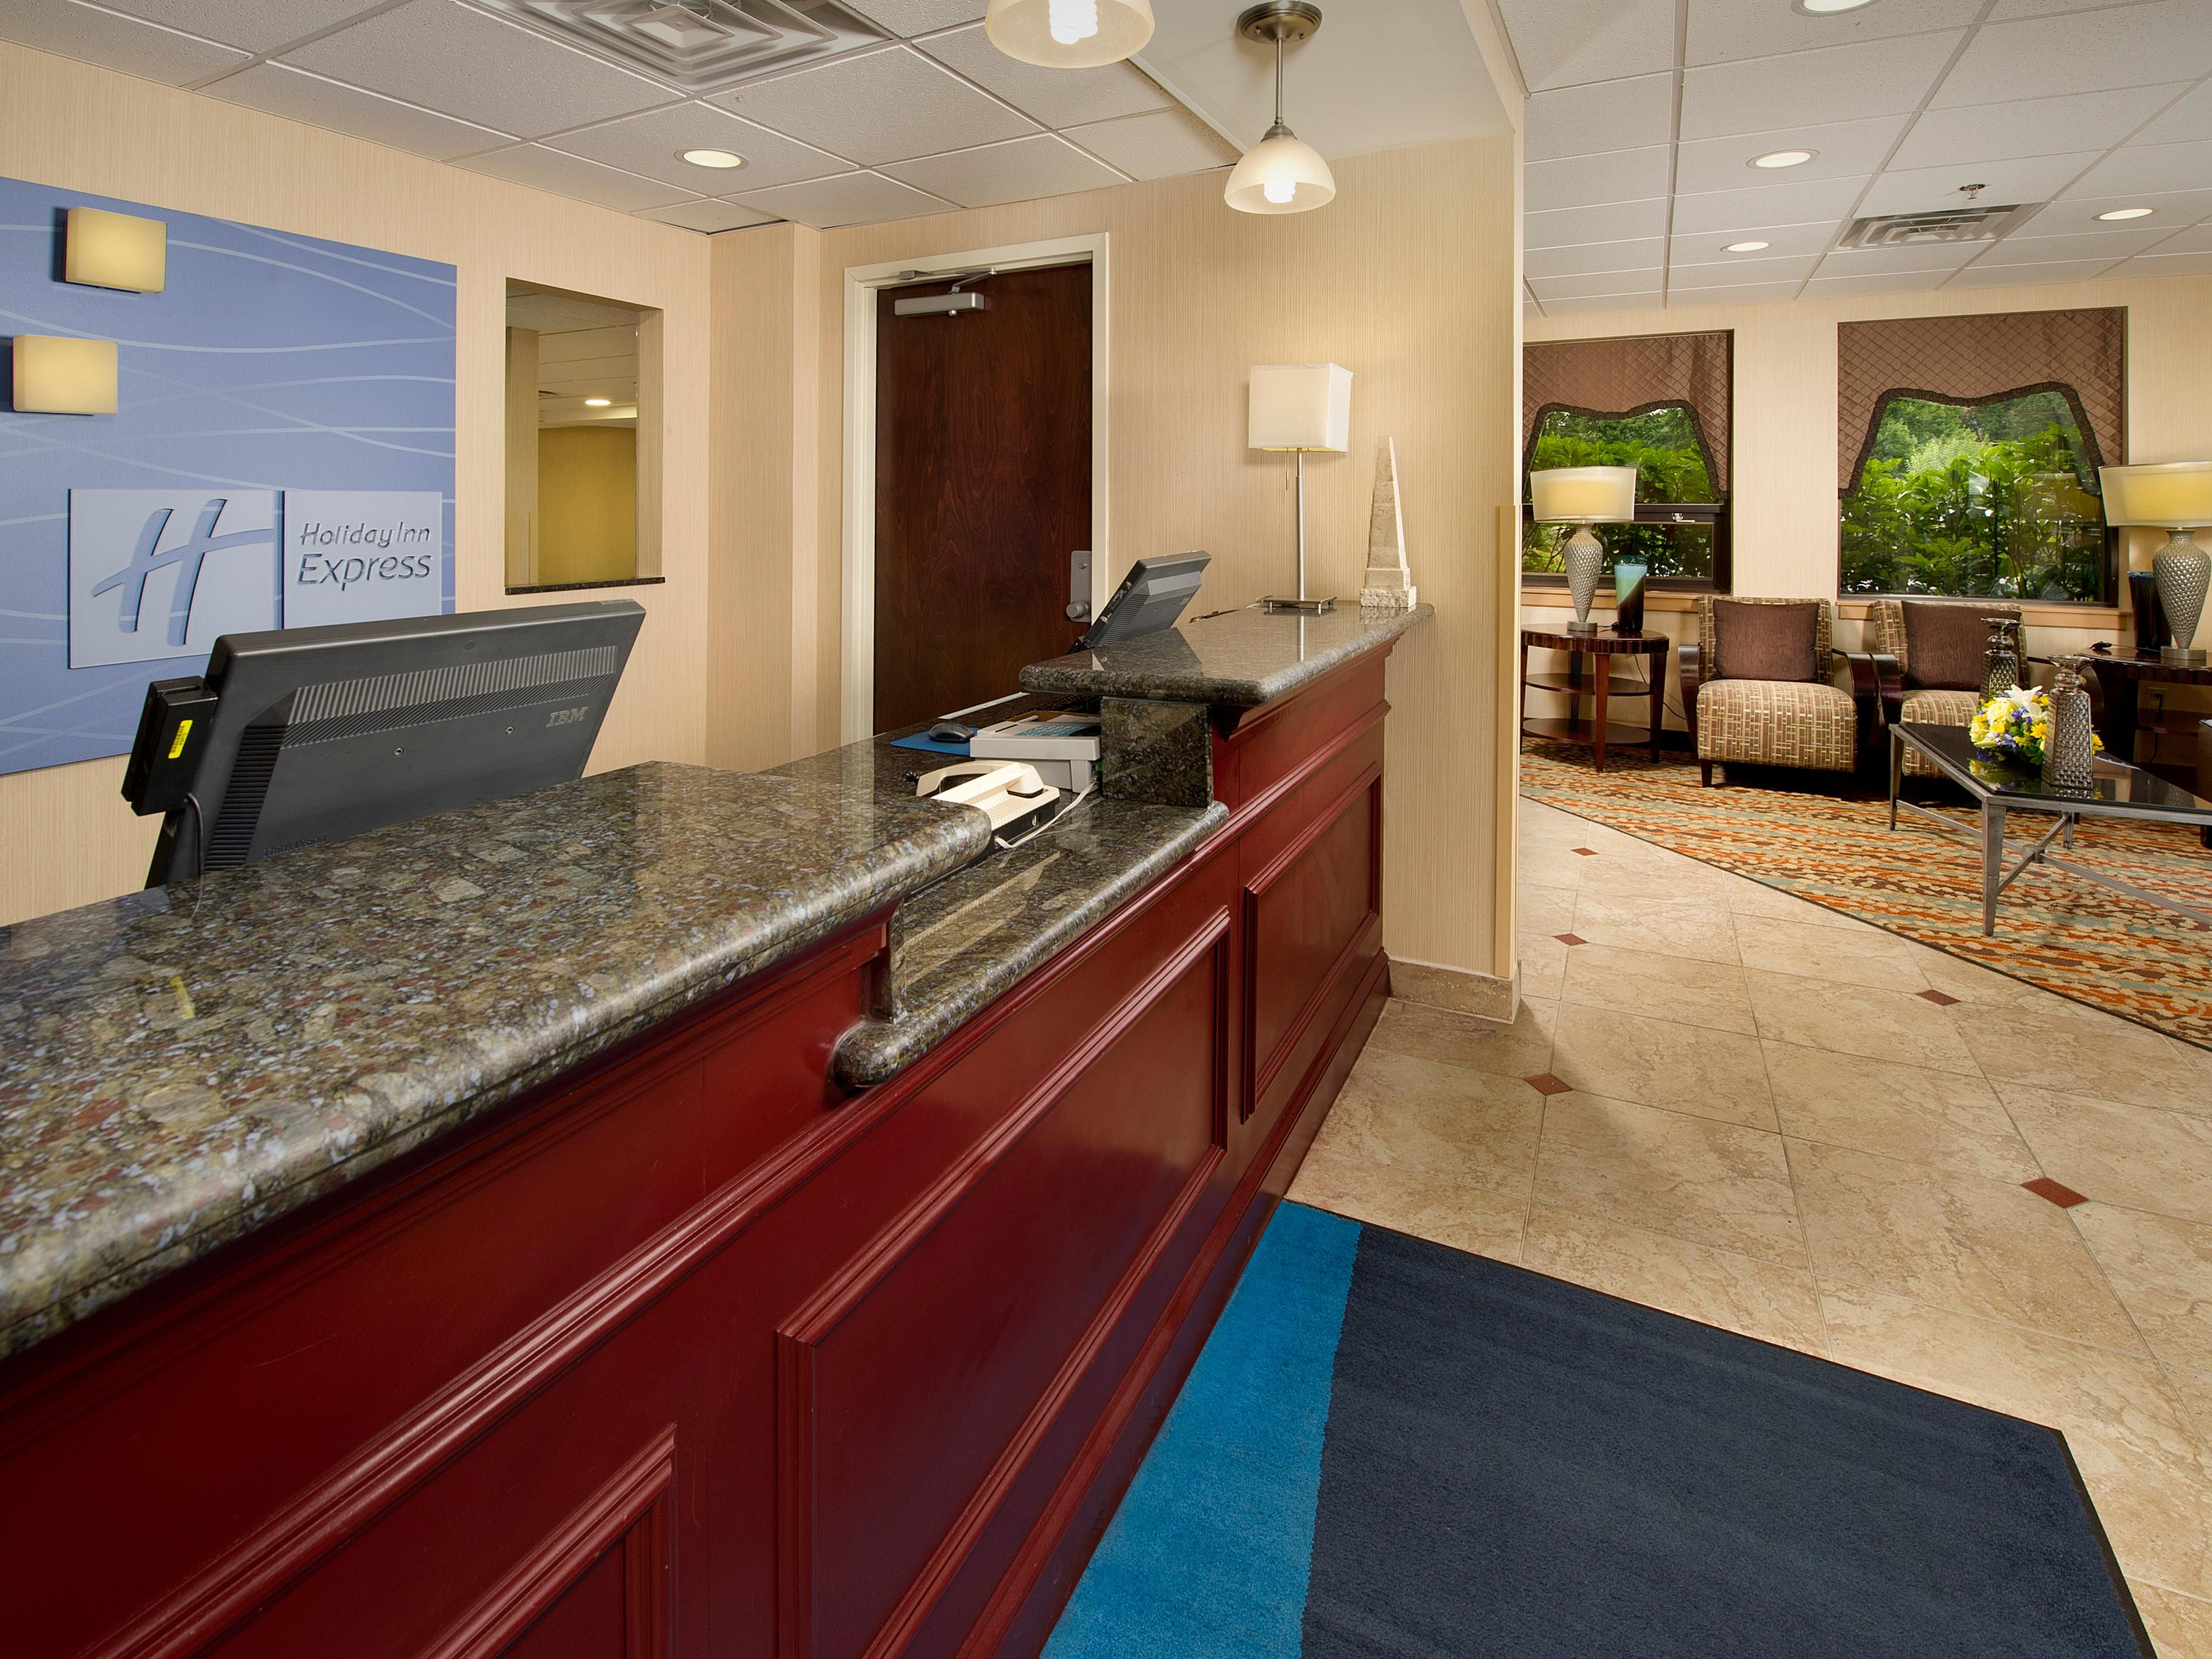 Welcome to the Holiday Inn Express Fairfax-Arlington Blvd!